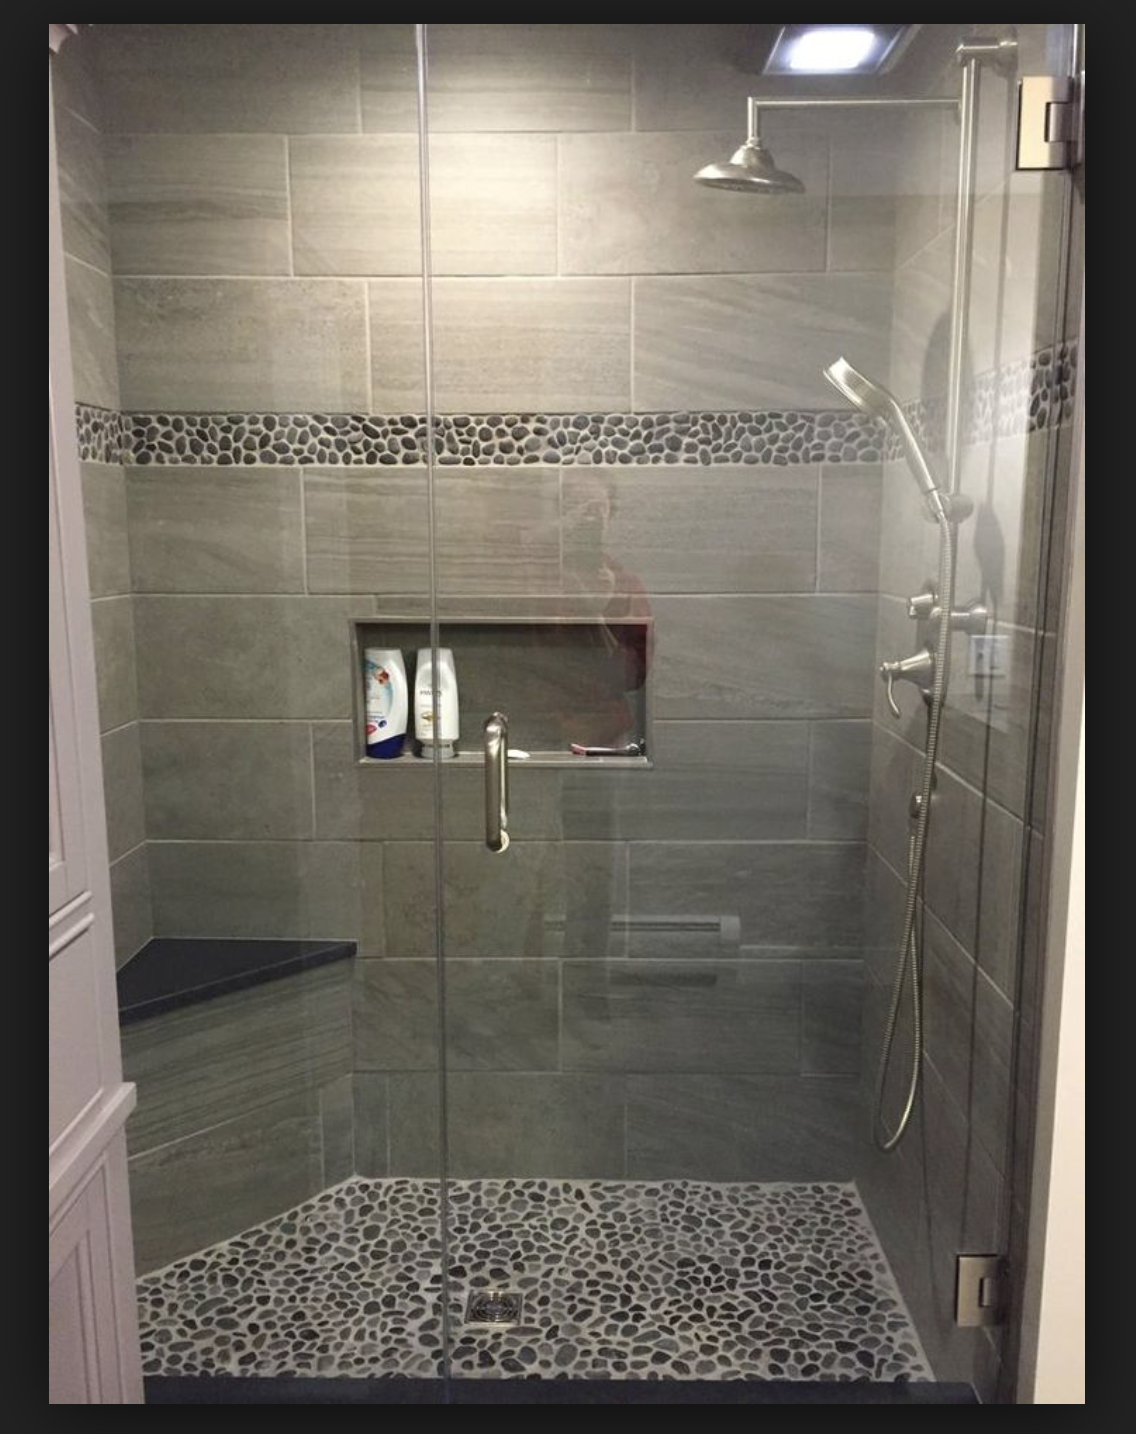 Tile instead of pebbles bathrooms bathroom shower - Bathroom wall covering instead of tiles ...